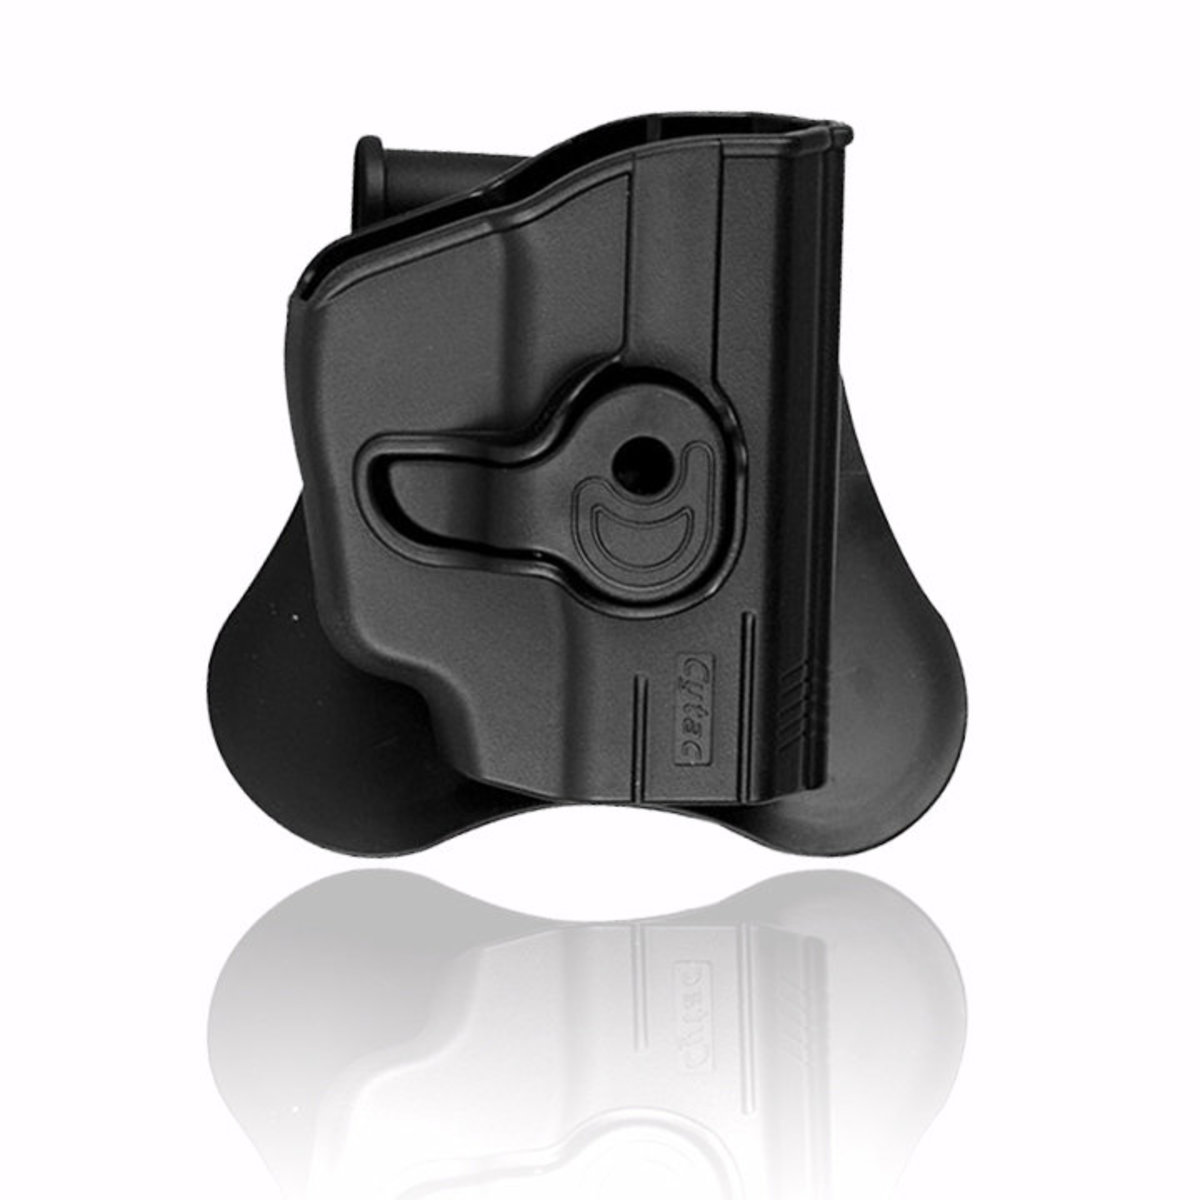 View larger image of Cytac OWB Holster - Fits Ruger LC9 with Crimson Trace Laser